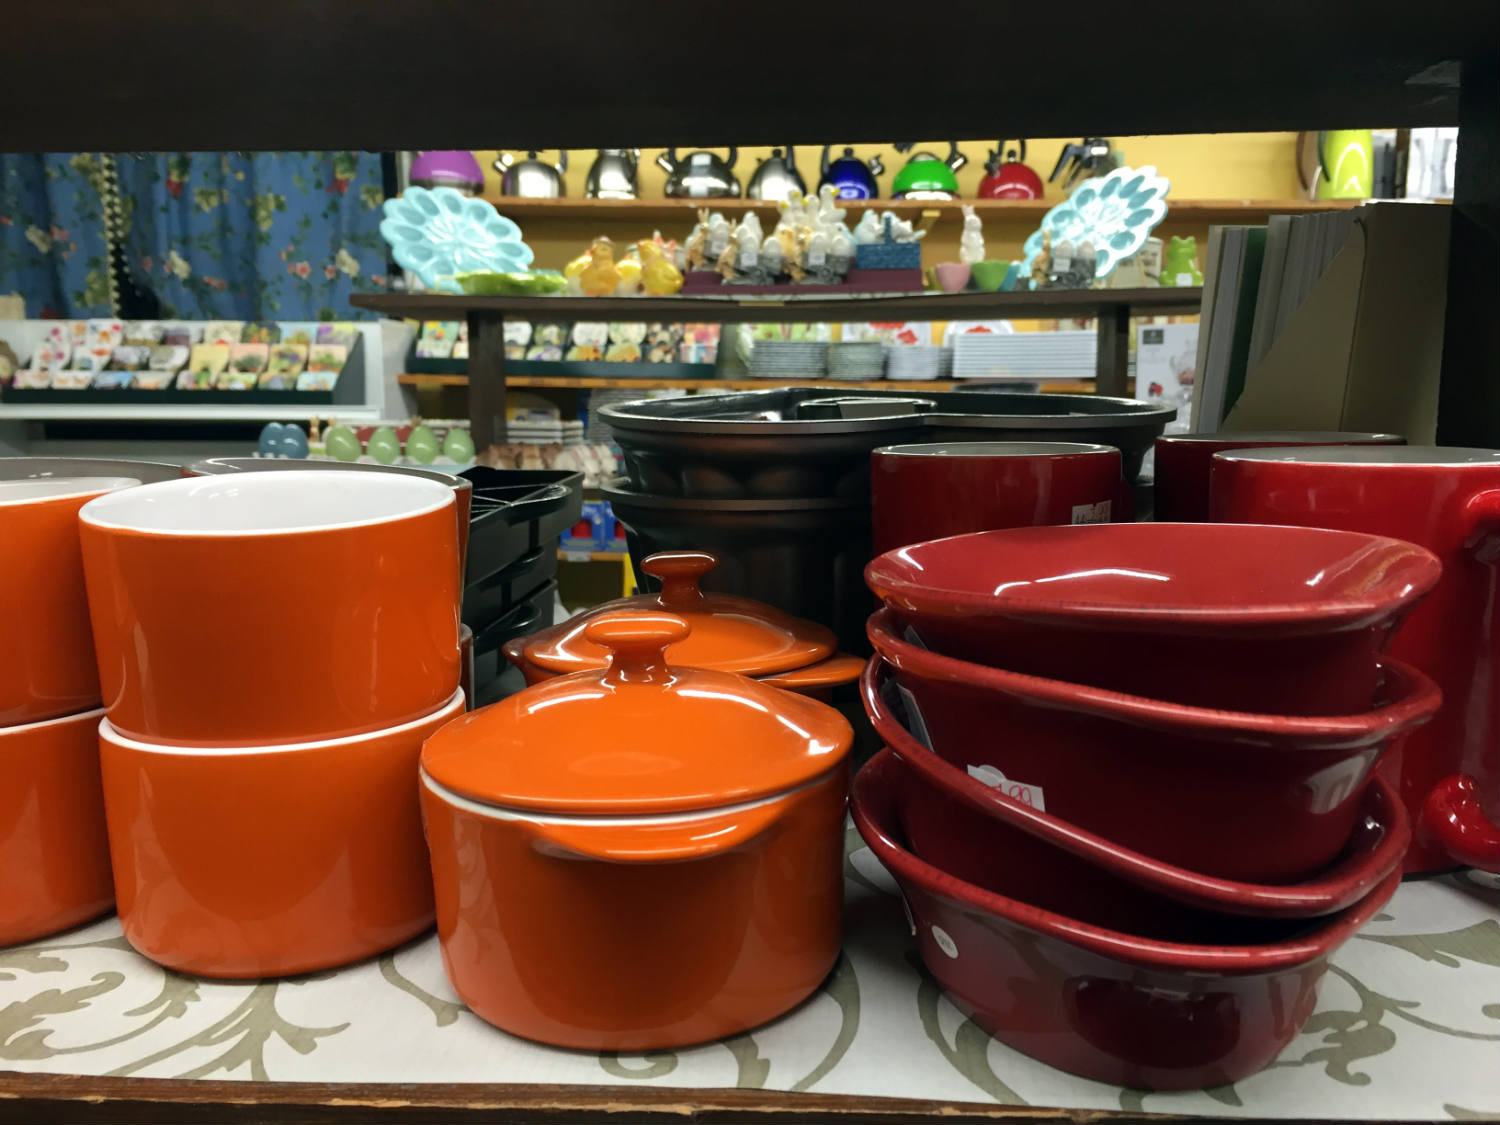 Cookware at Vidler's in East Aurora, New York